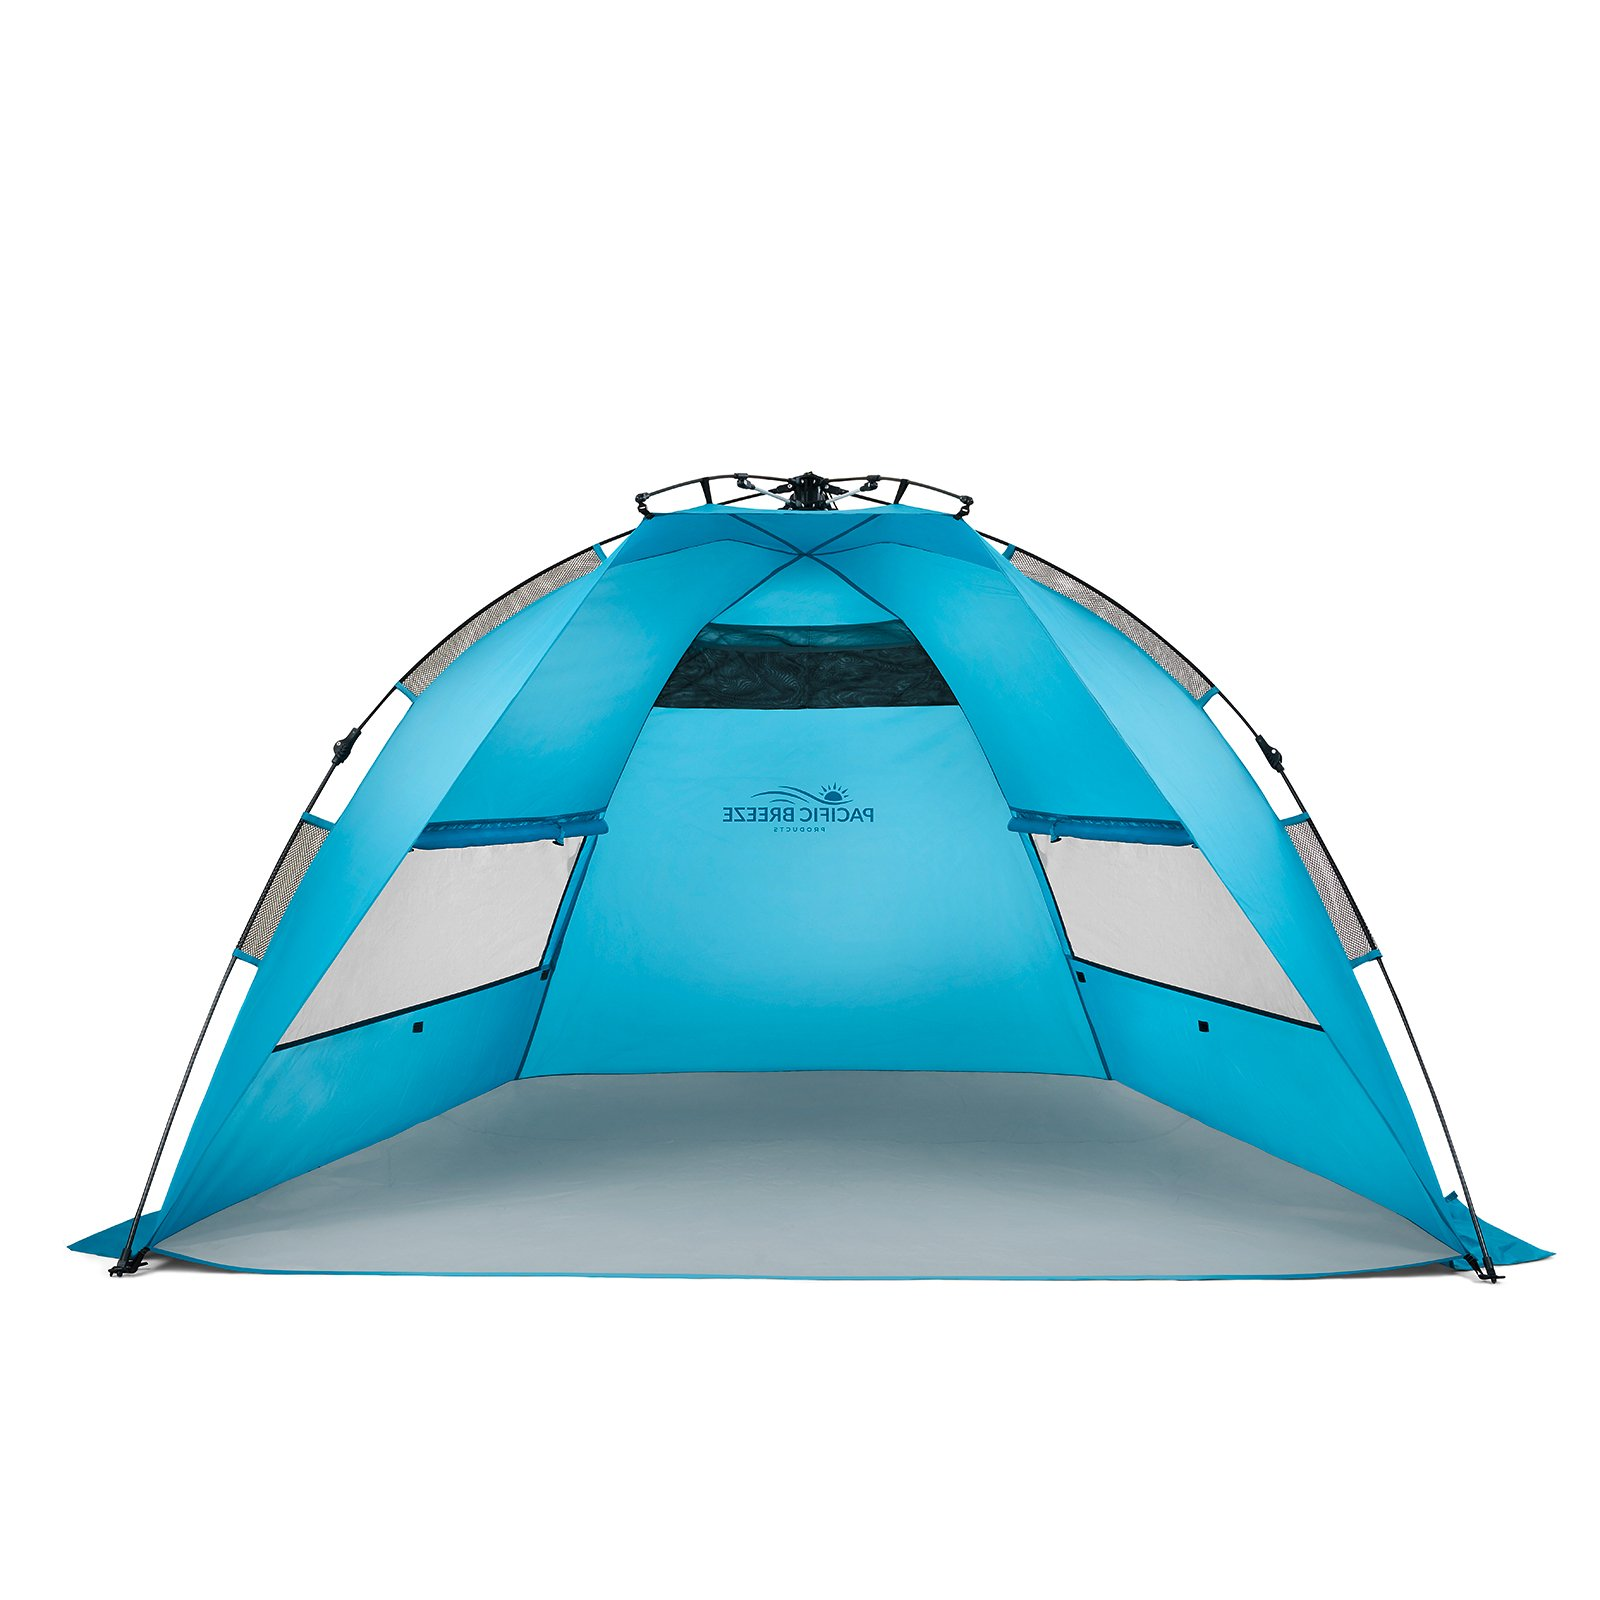 a416f1958c Best Rated in Camping Sun Shelters & Helpful Customer Reviews ...